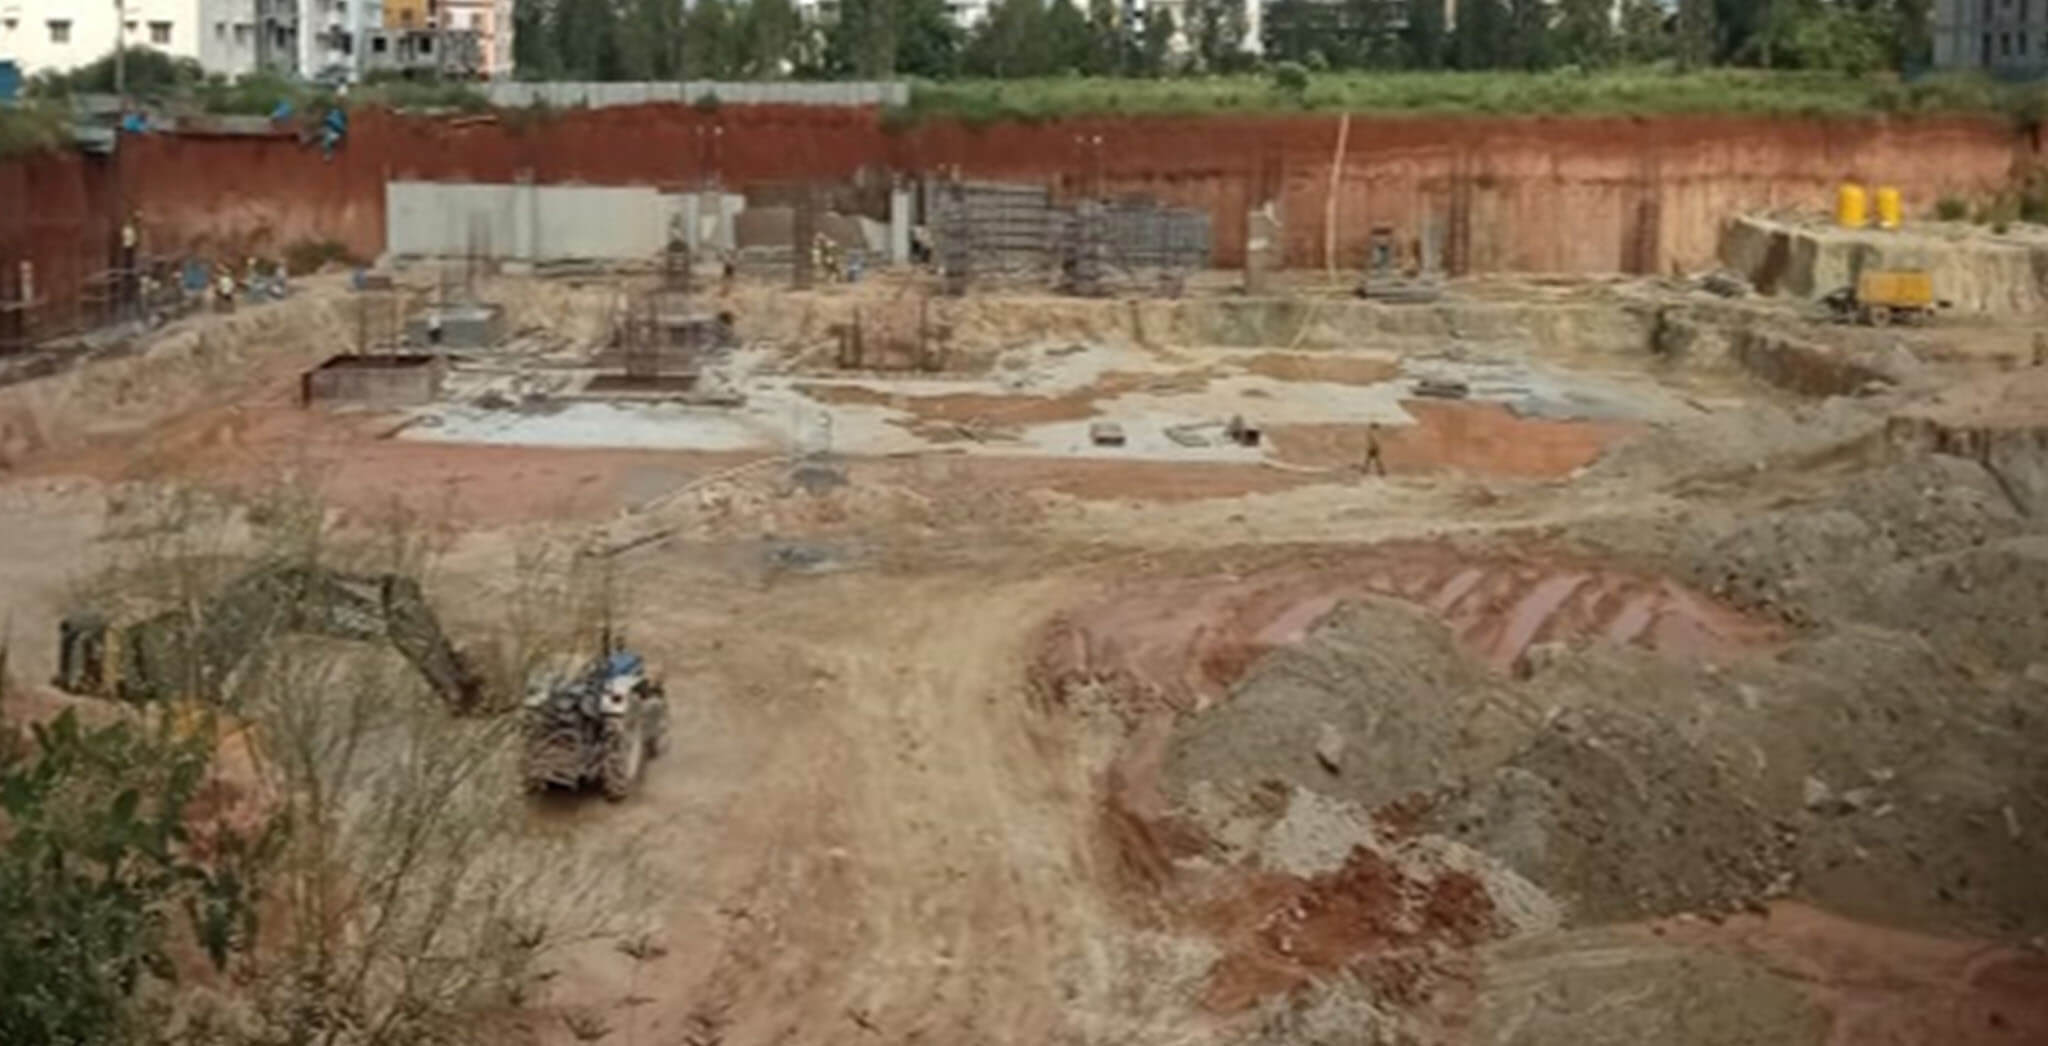 Sep 2020 - Arcadia: Total Estimated Qty–85,000 Cum, Excavated Qty–55,000 Cum; Retaining wall raft–108/375 Rmt & Retaining wall–50/375 Rmt completed; Footing Progress 15/103 Nos completed & 7/117 Nos column completed; Tower area footing PCC of 1600/2725 Sqm completed